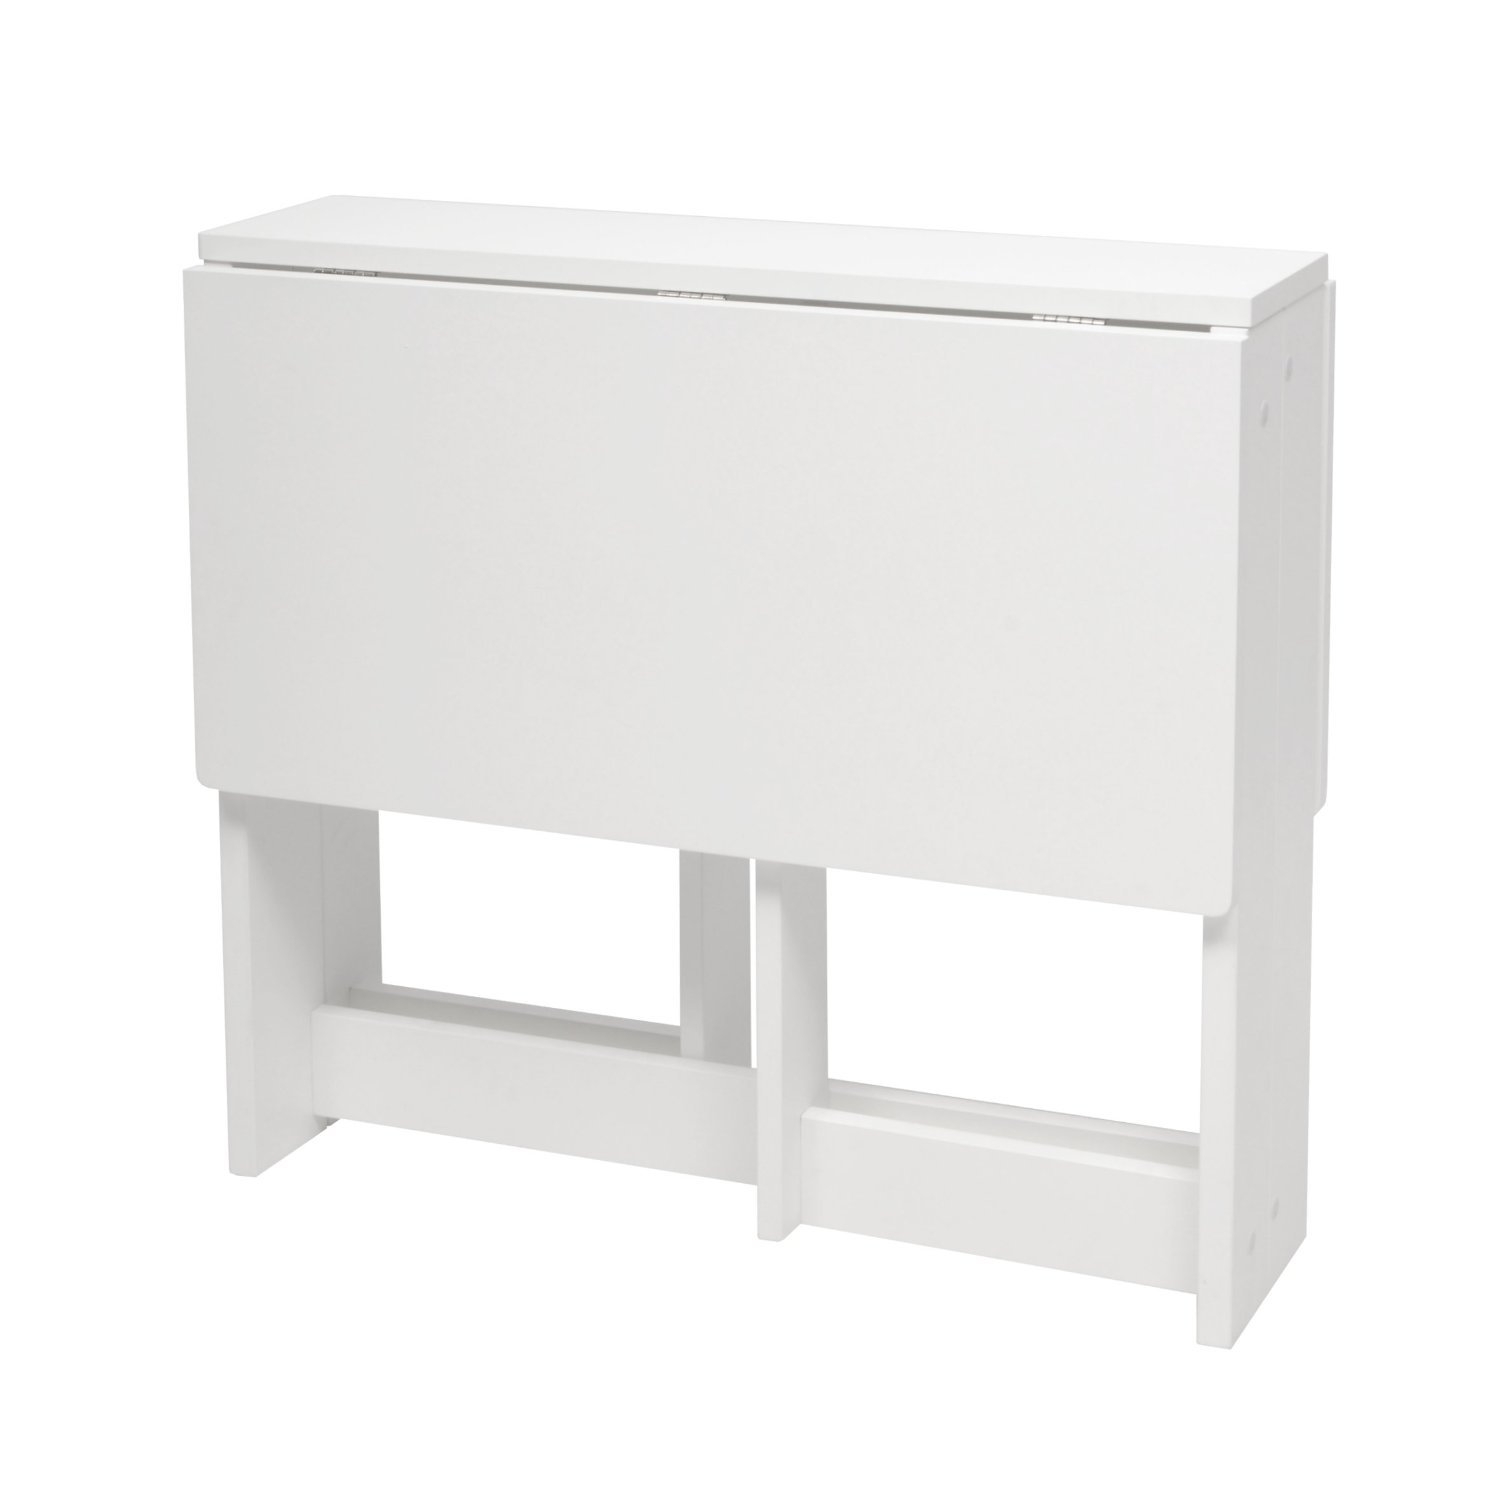 Good table pliable pas cher 1 table pliante de cuisine for Table blanche